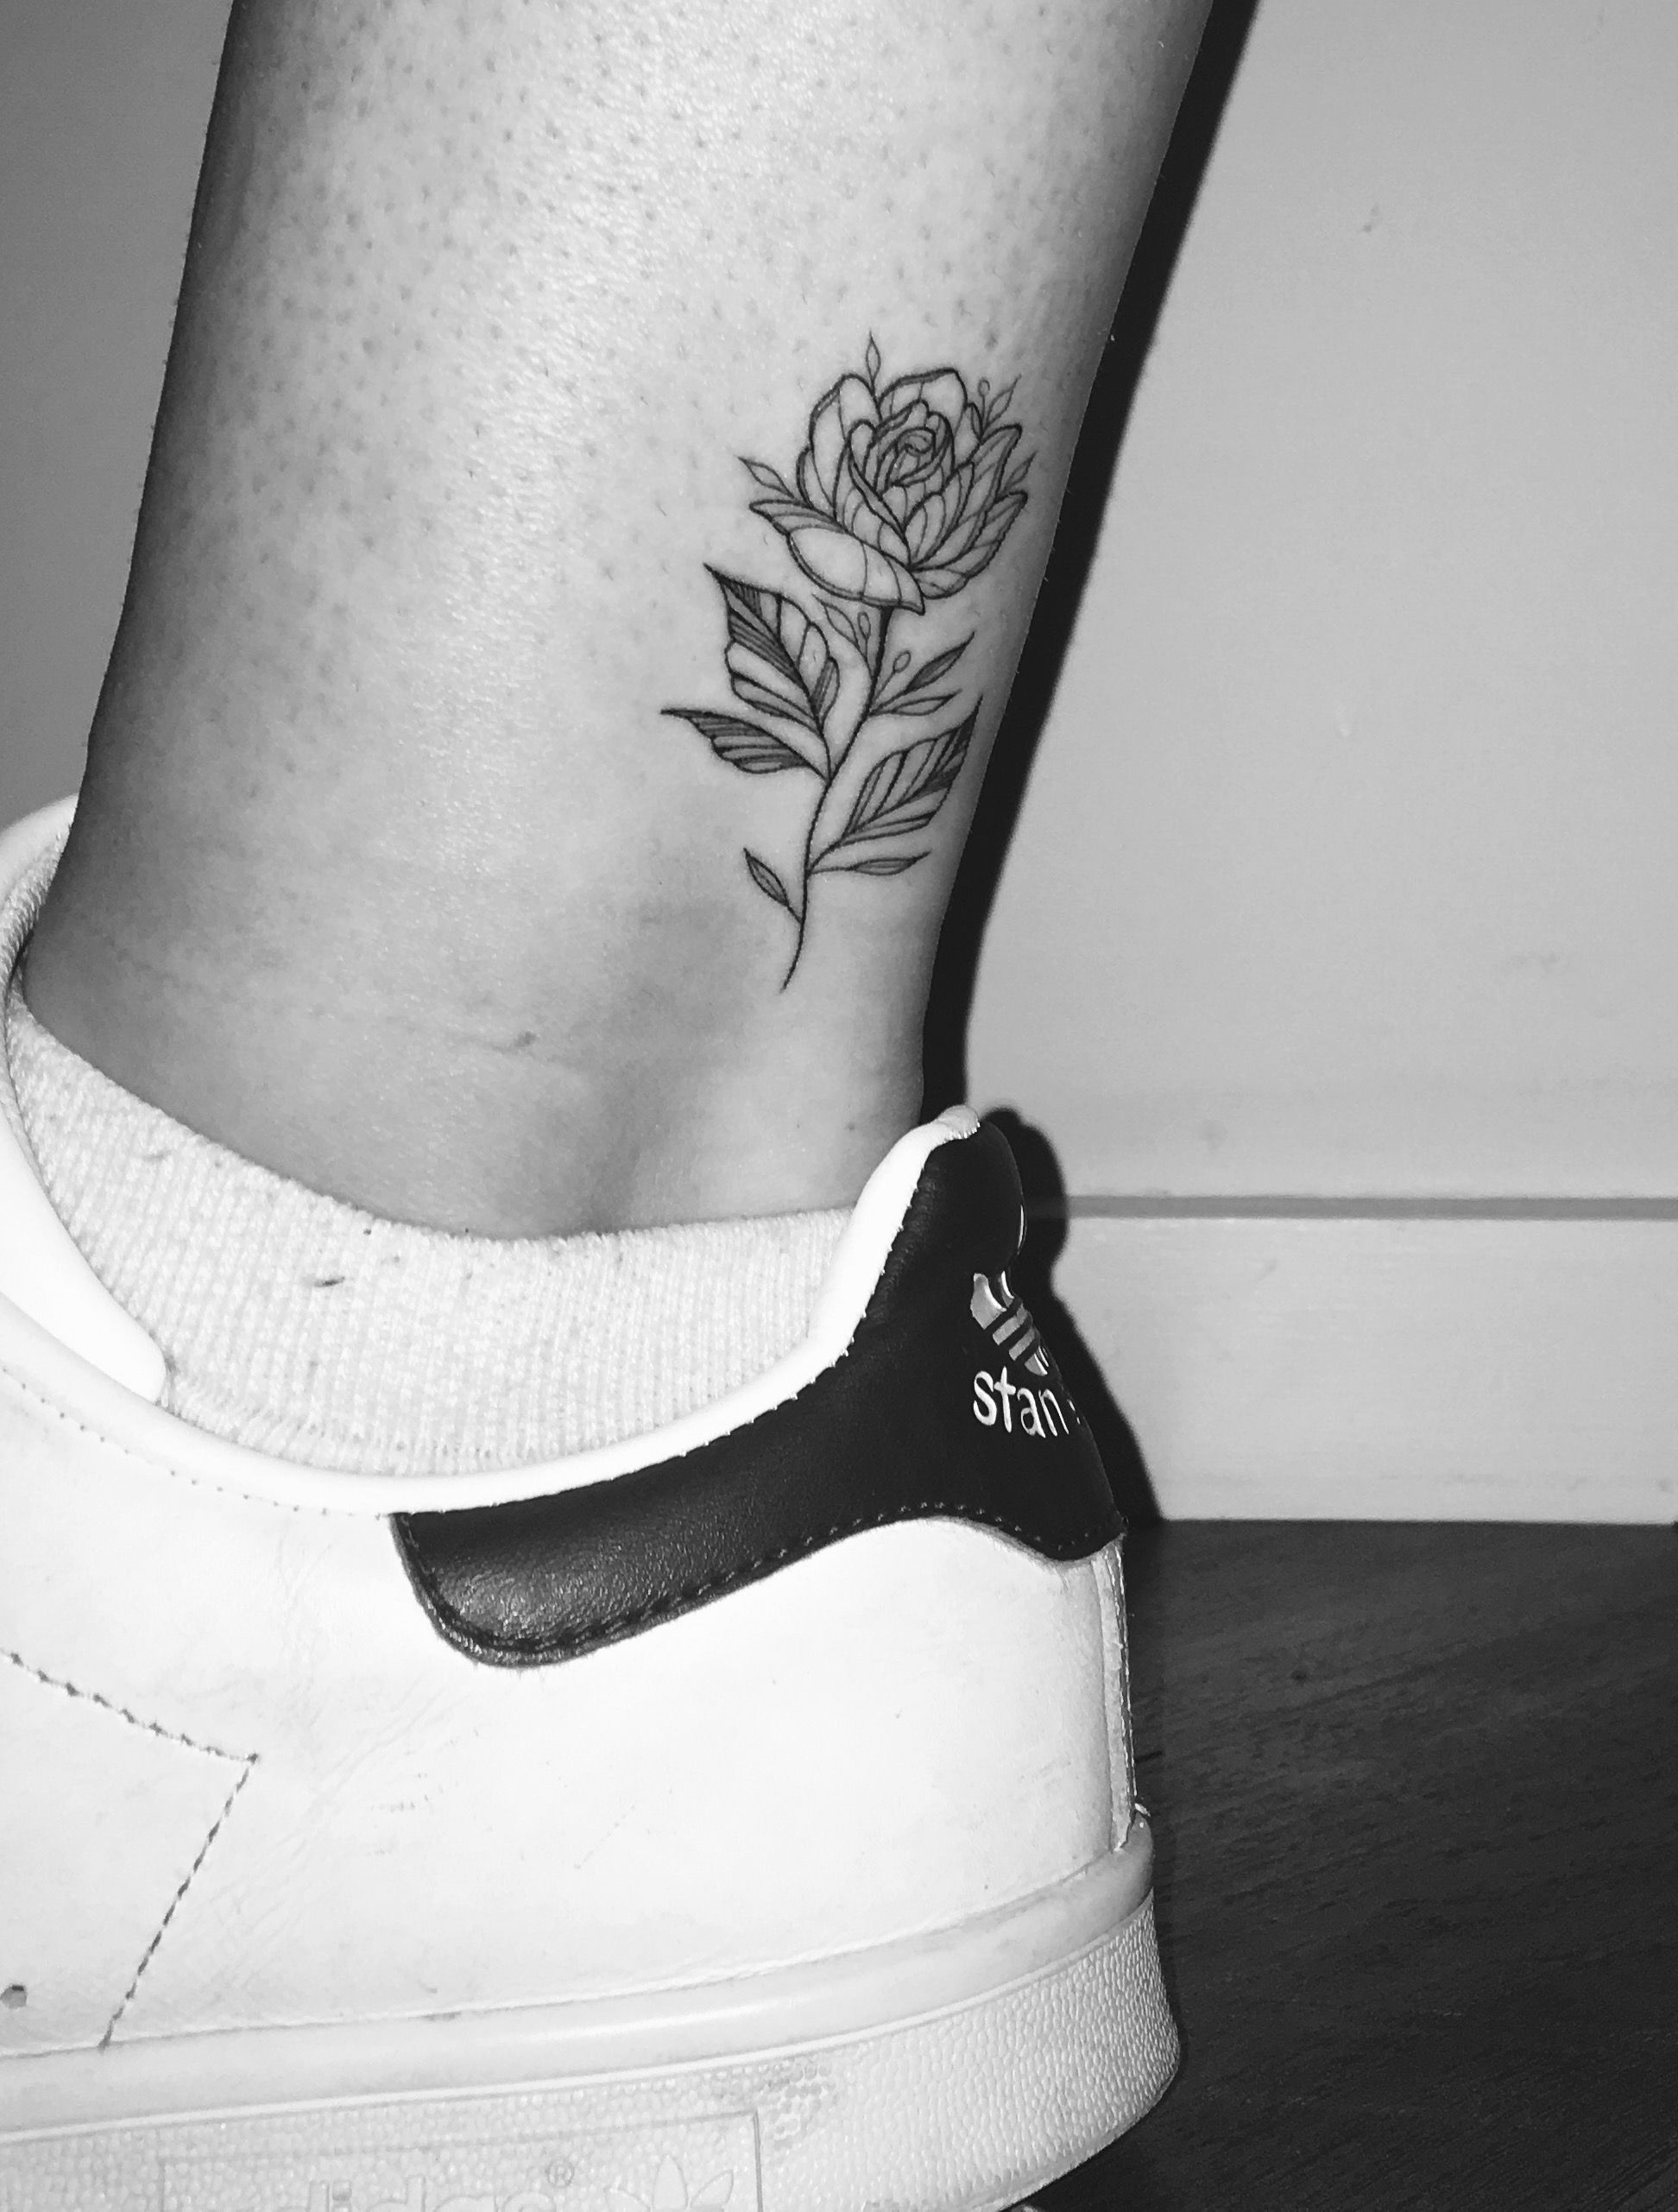 Little Rose Single Needle Tattoo On The Back Of The Ankle By